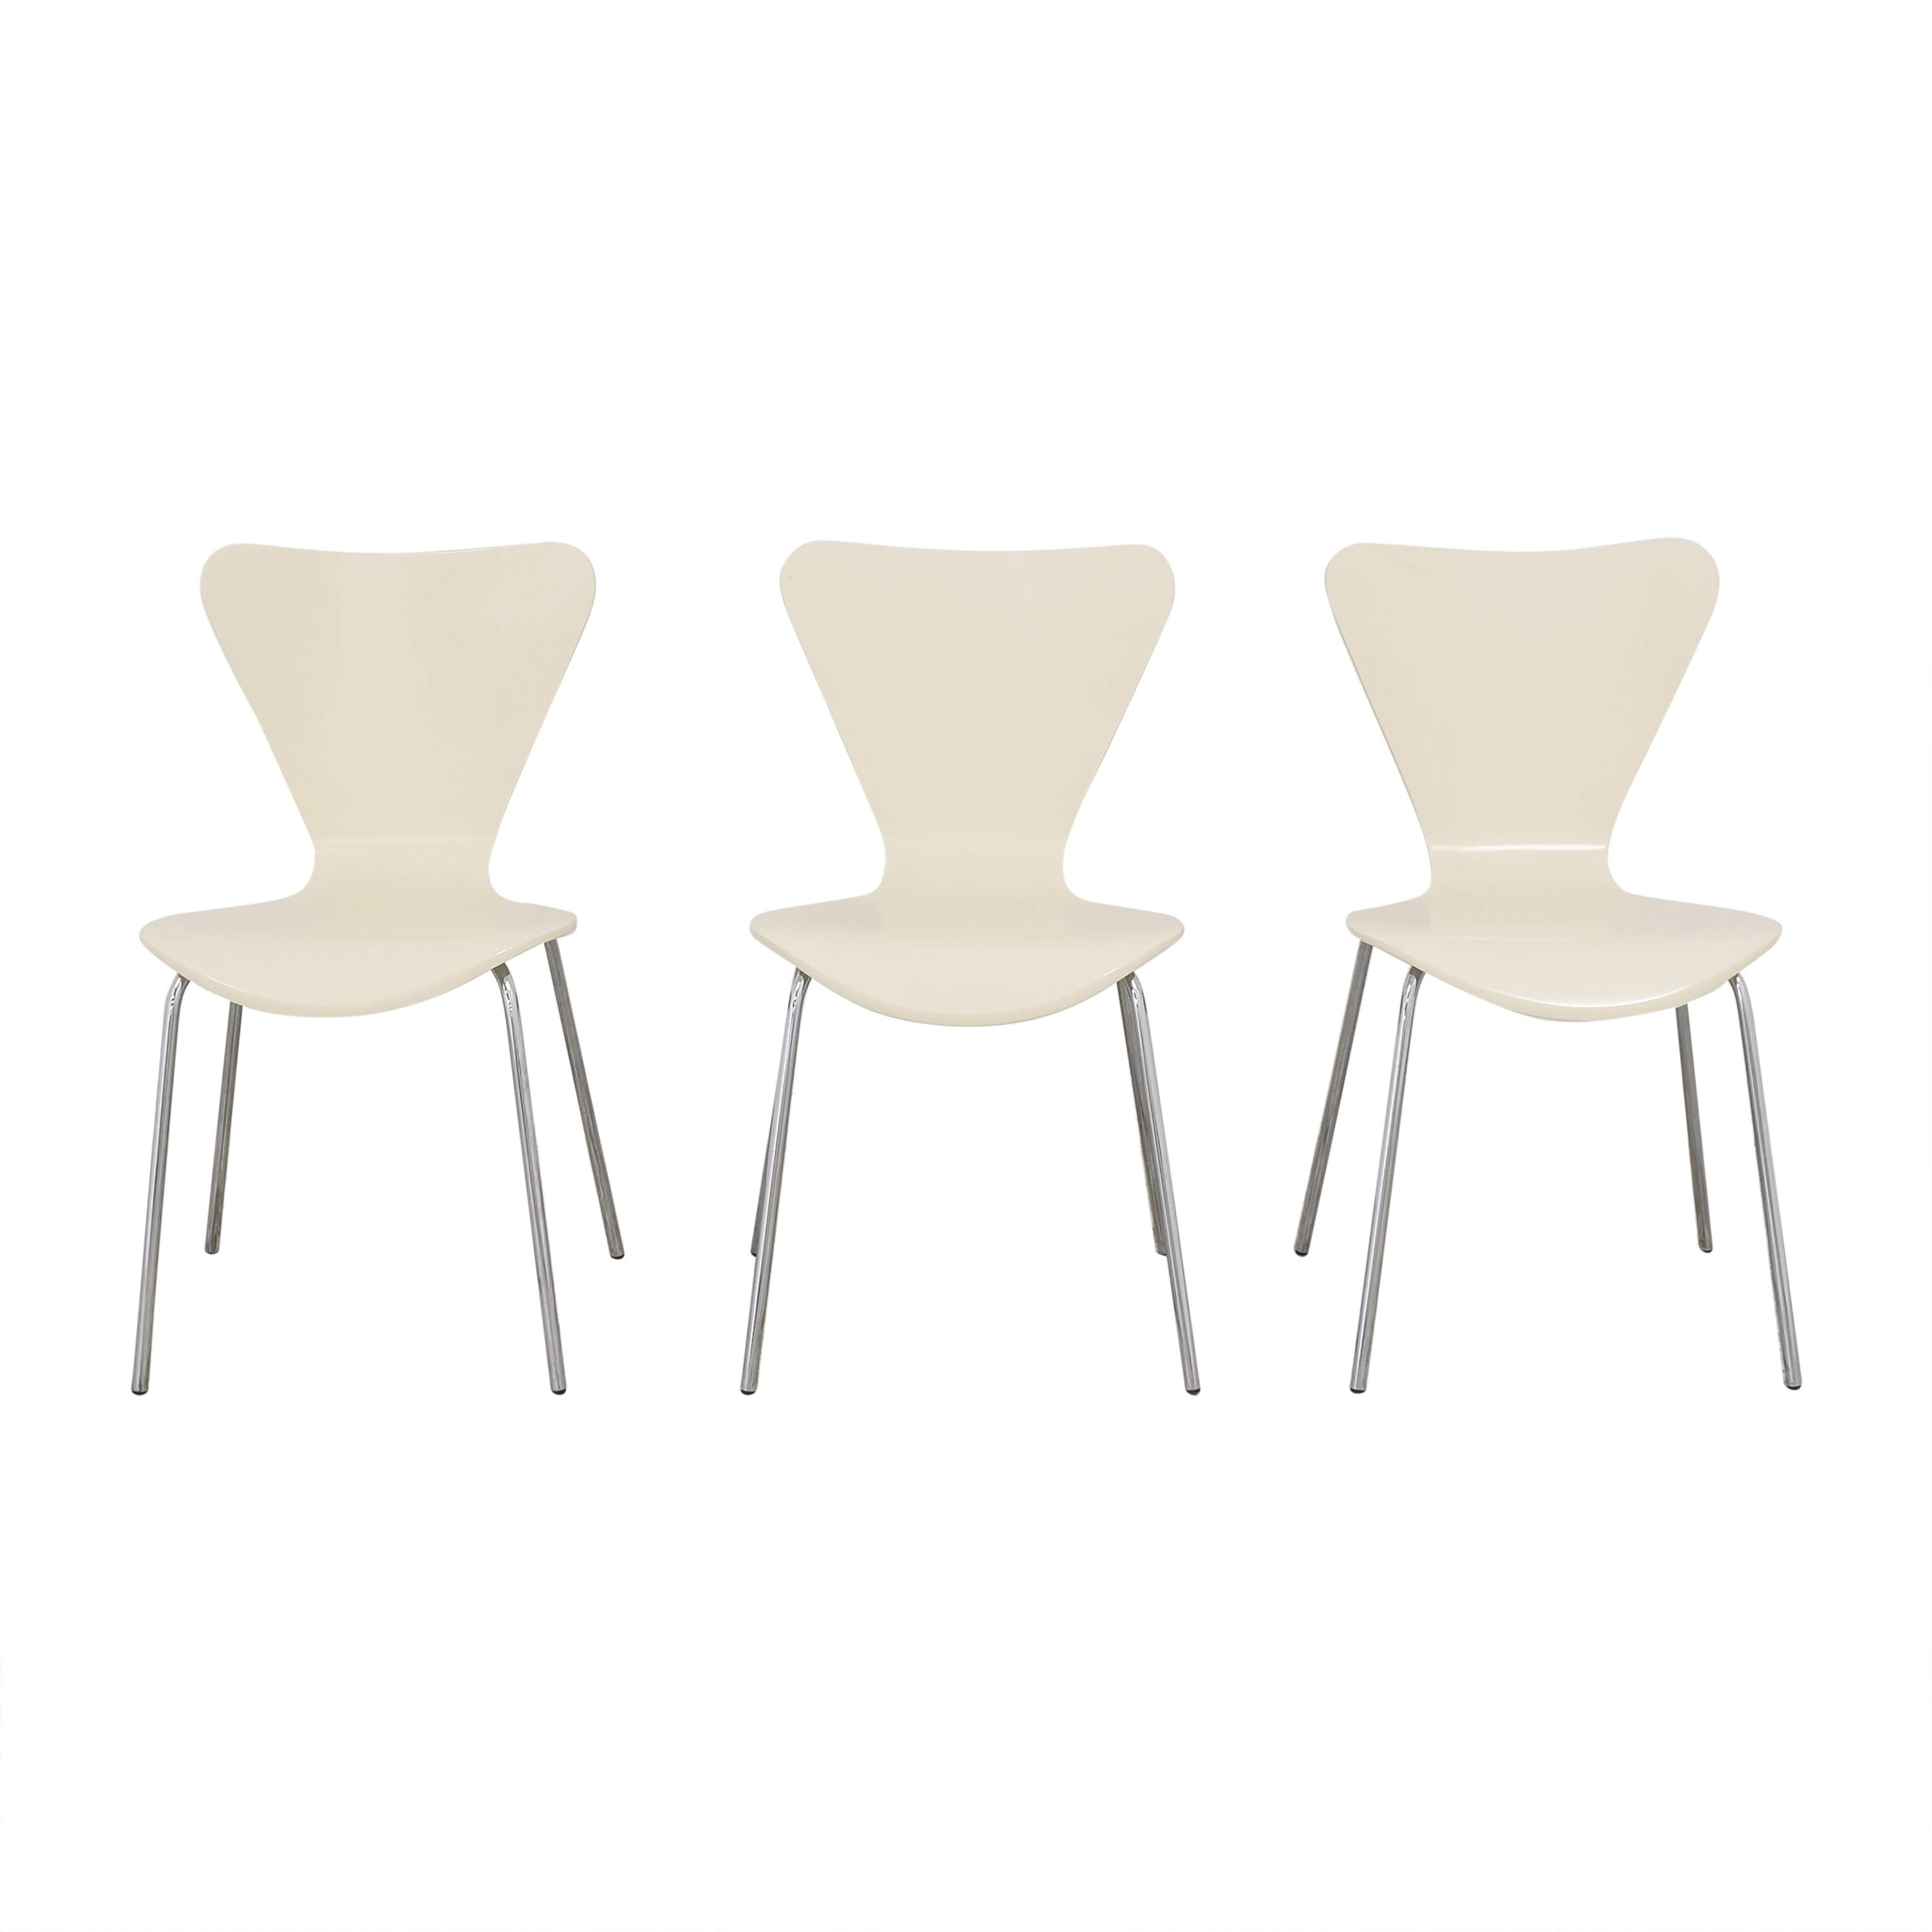 shop Room & Board Jake Chairs Room & Board Dining Chairs